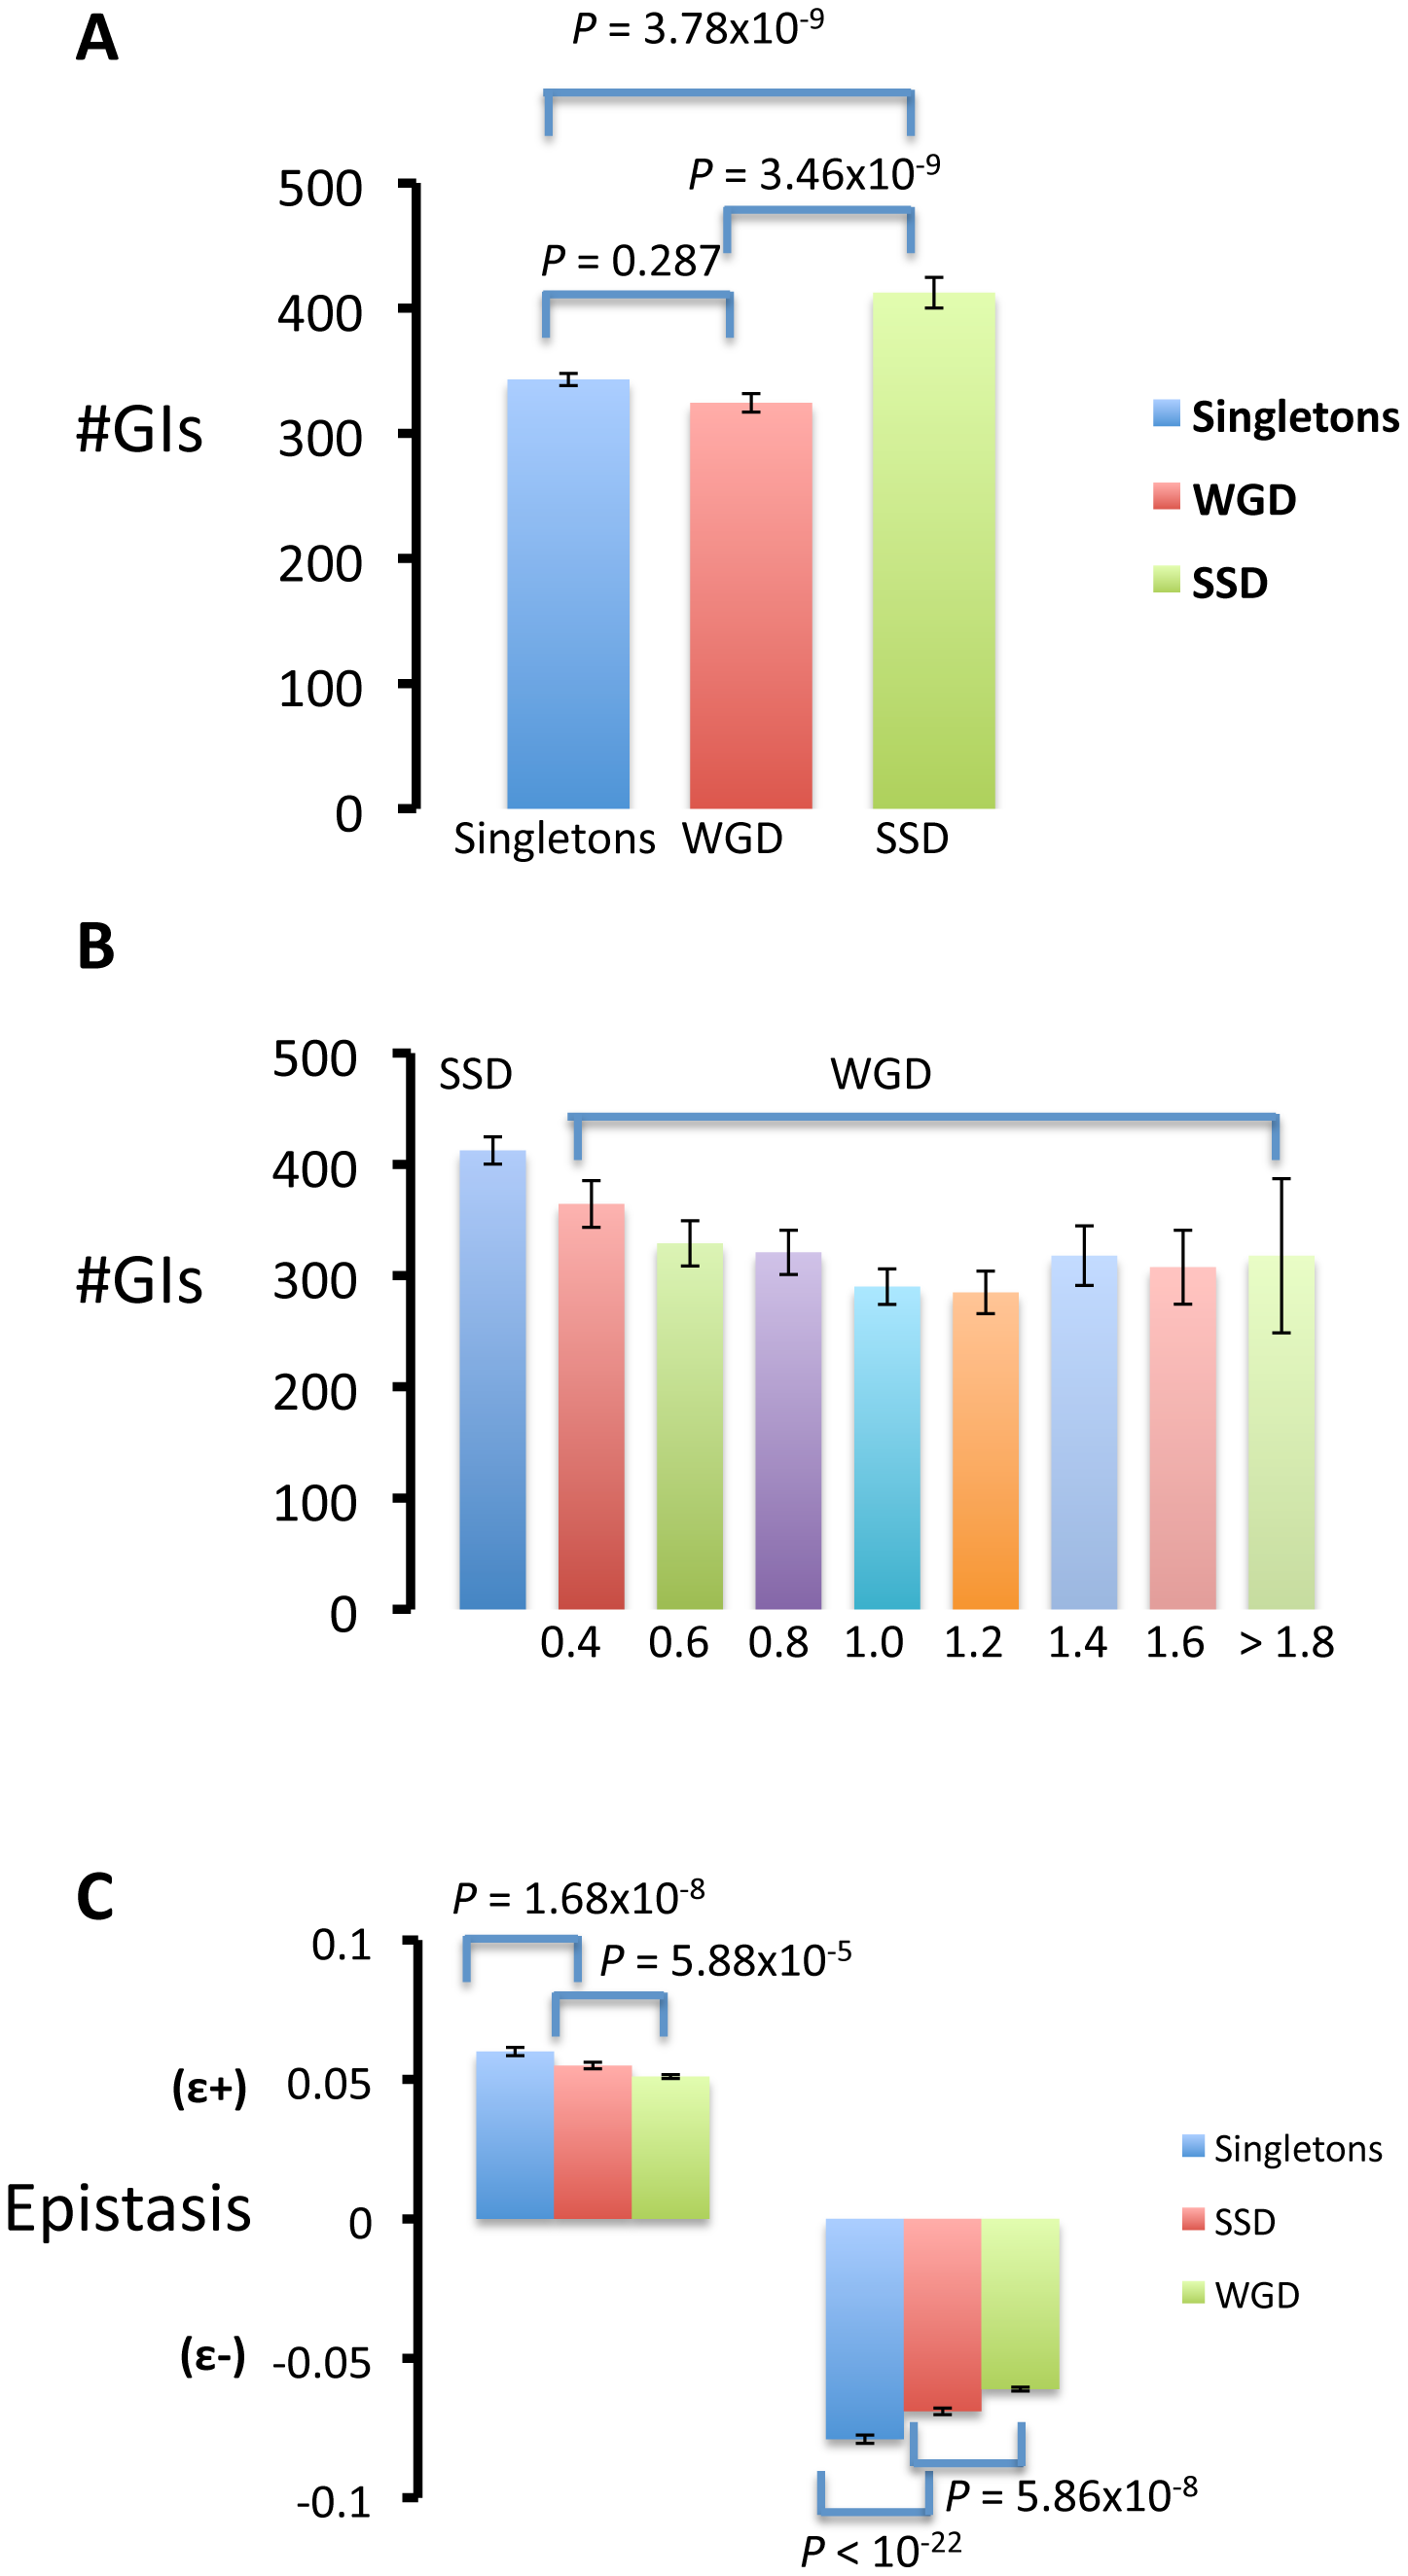 Gene duplicated by small-scale duplications (SSD) present a larger number of genetic interactions (#GI) than those duplicated by whole-genome duplication (WGD) and singletons.